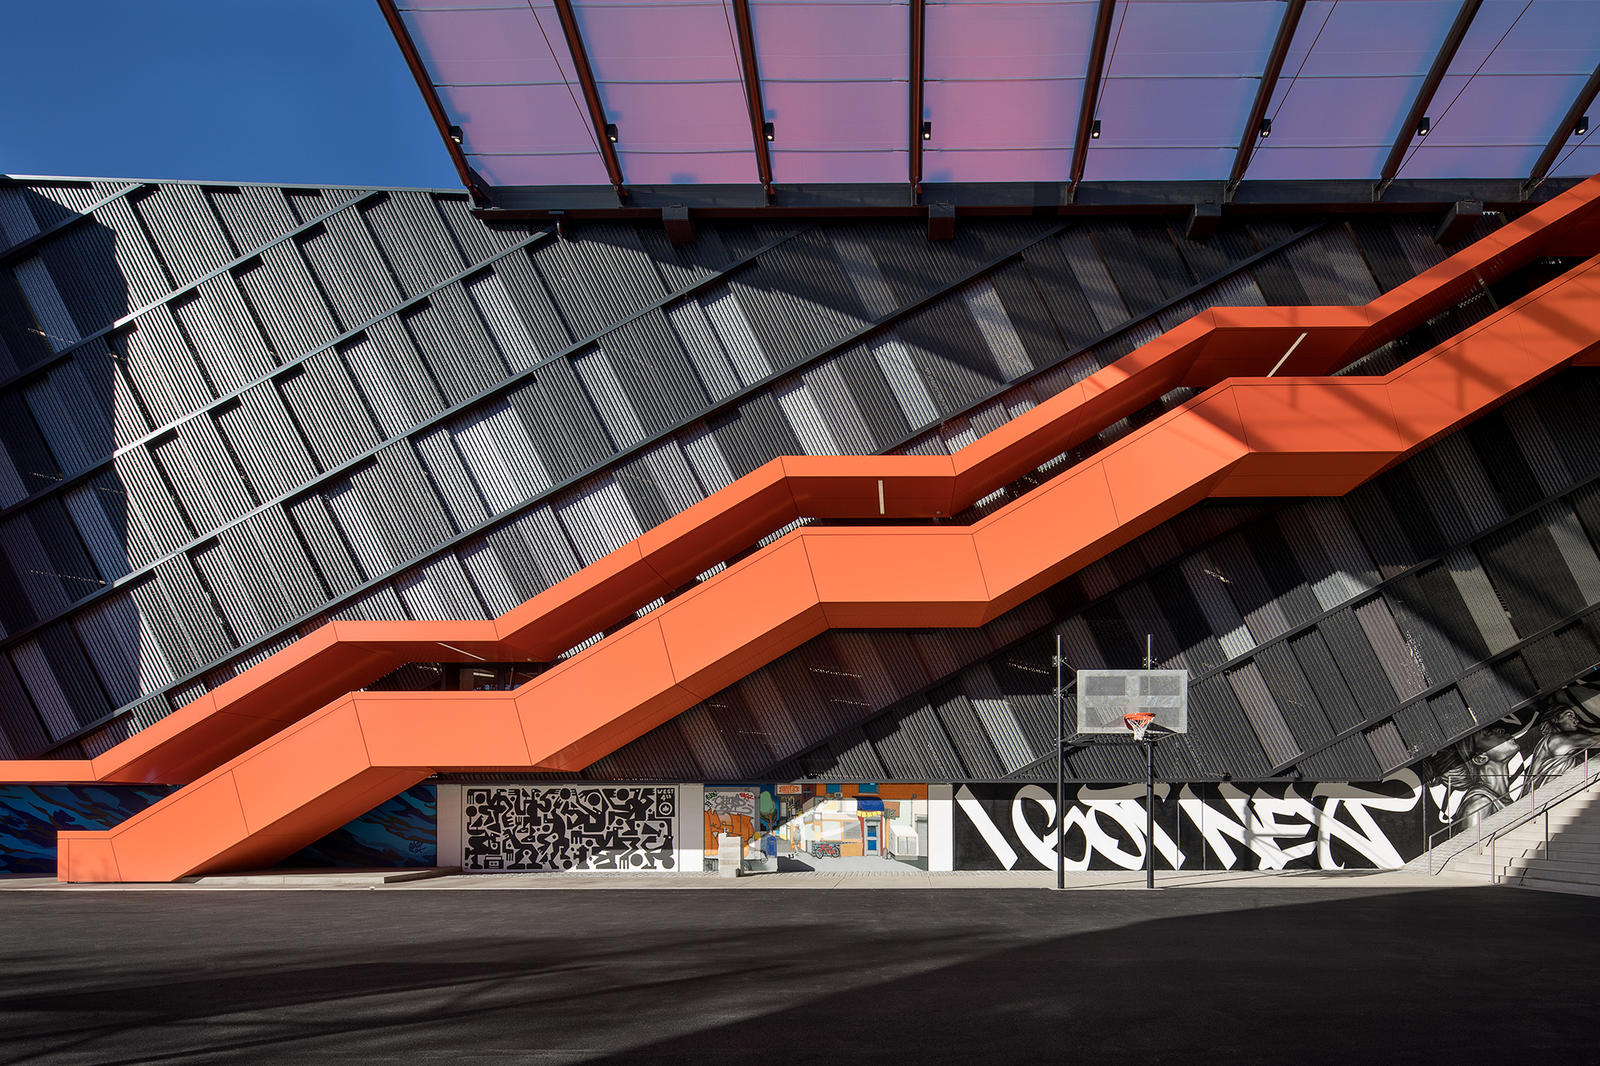 Stash and More Paint Murals for Nike's New NYC Garage - Nike